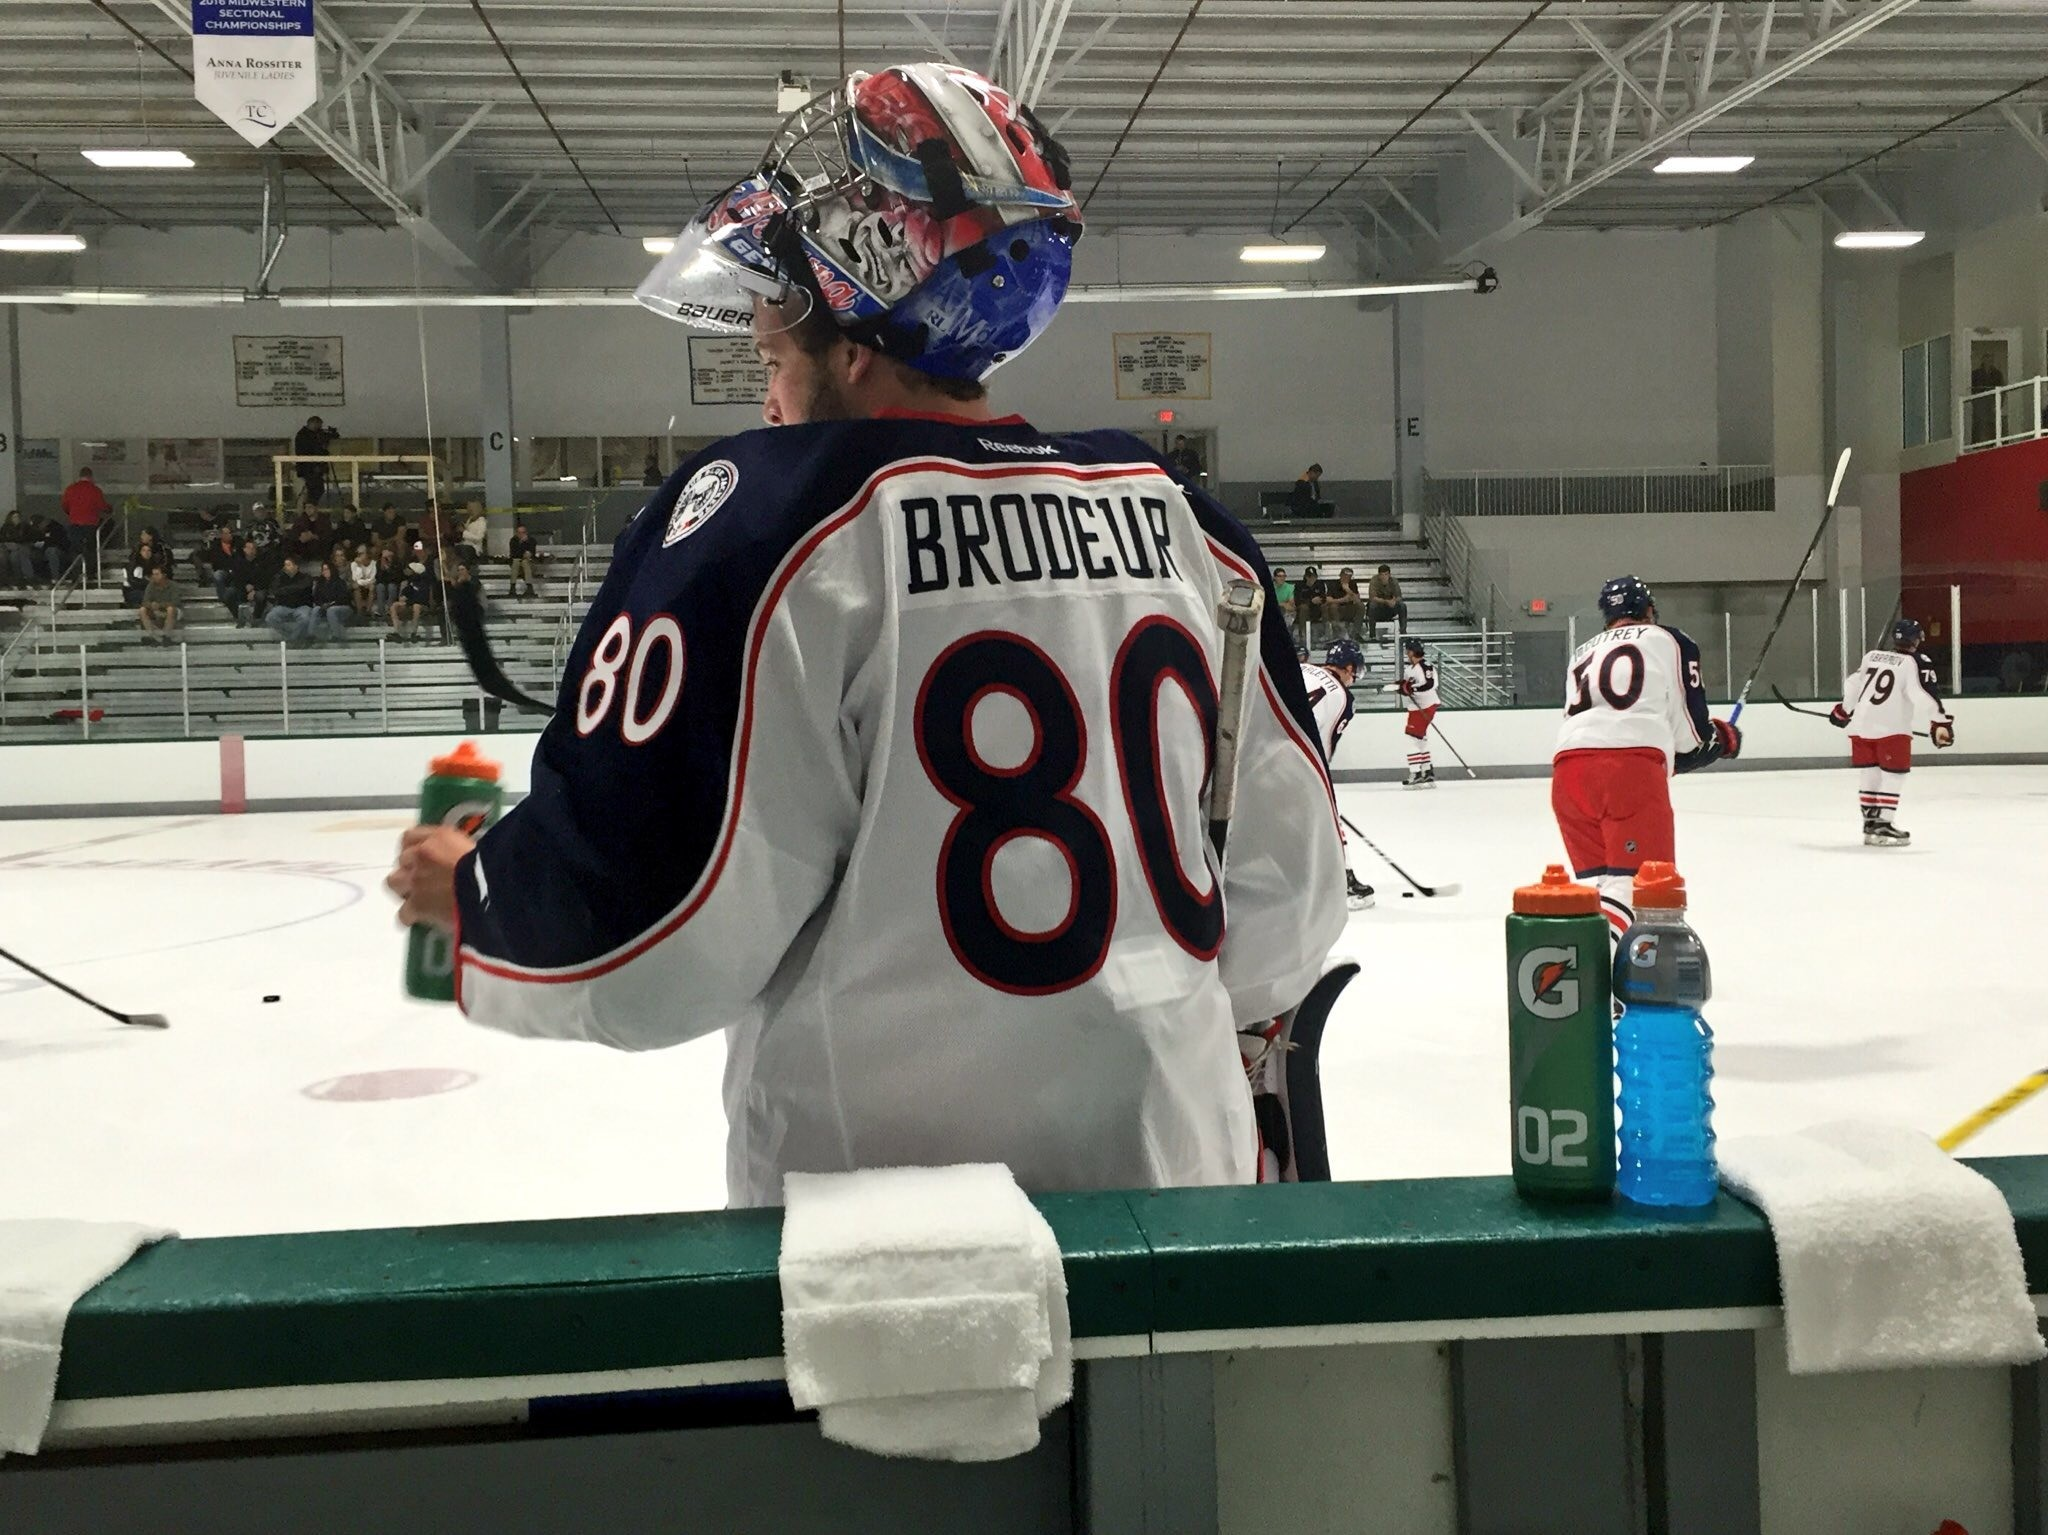 Martin Brodeur Gets To Watch His Son Jeremy Play For Blue Jackets